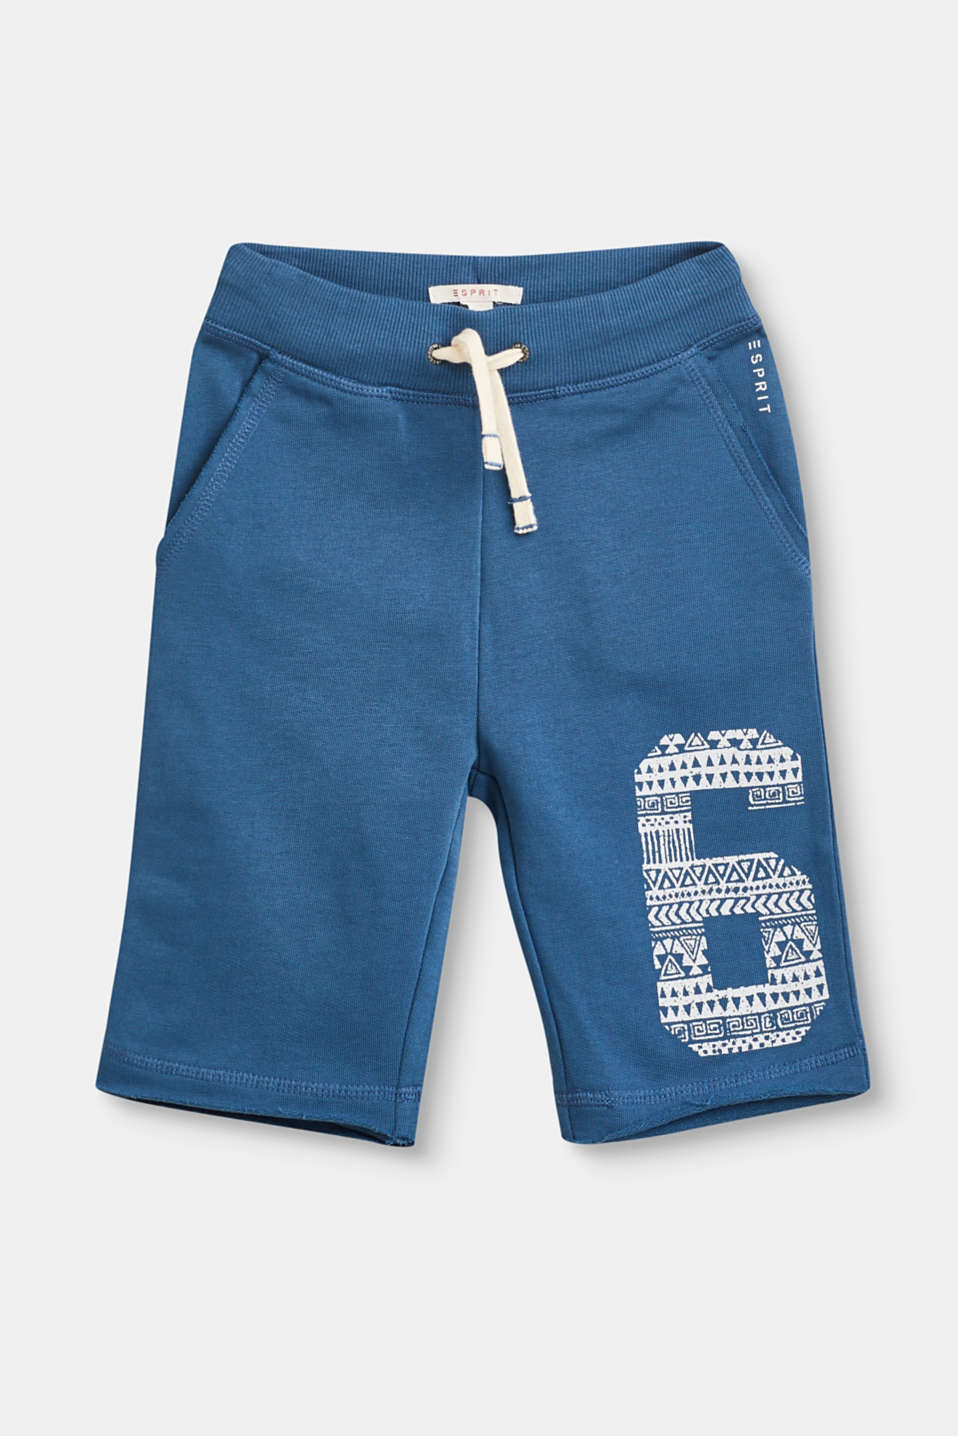 Esprit - Sweatshirt shorts with a number print, 100% cotton